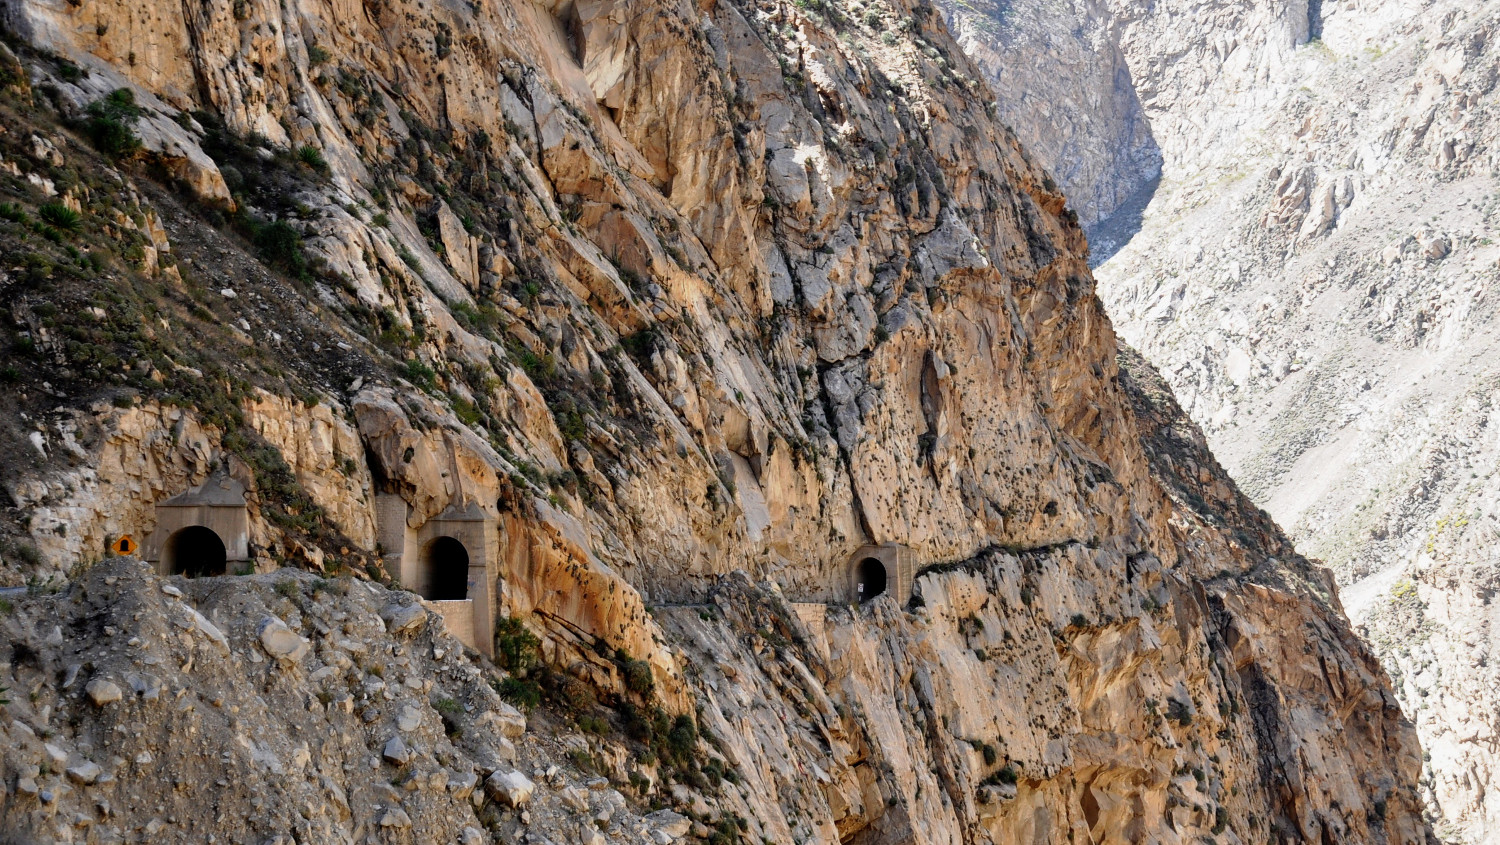 Tunnelserie am Rande des Abgrunds   A series of tunnels on the edge of a precipice